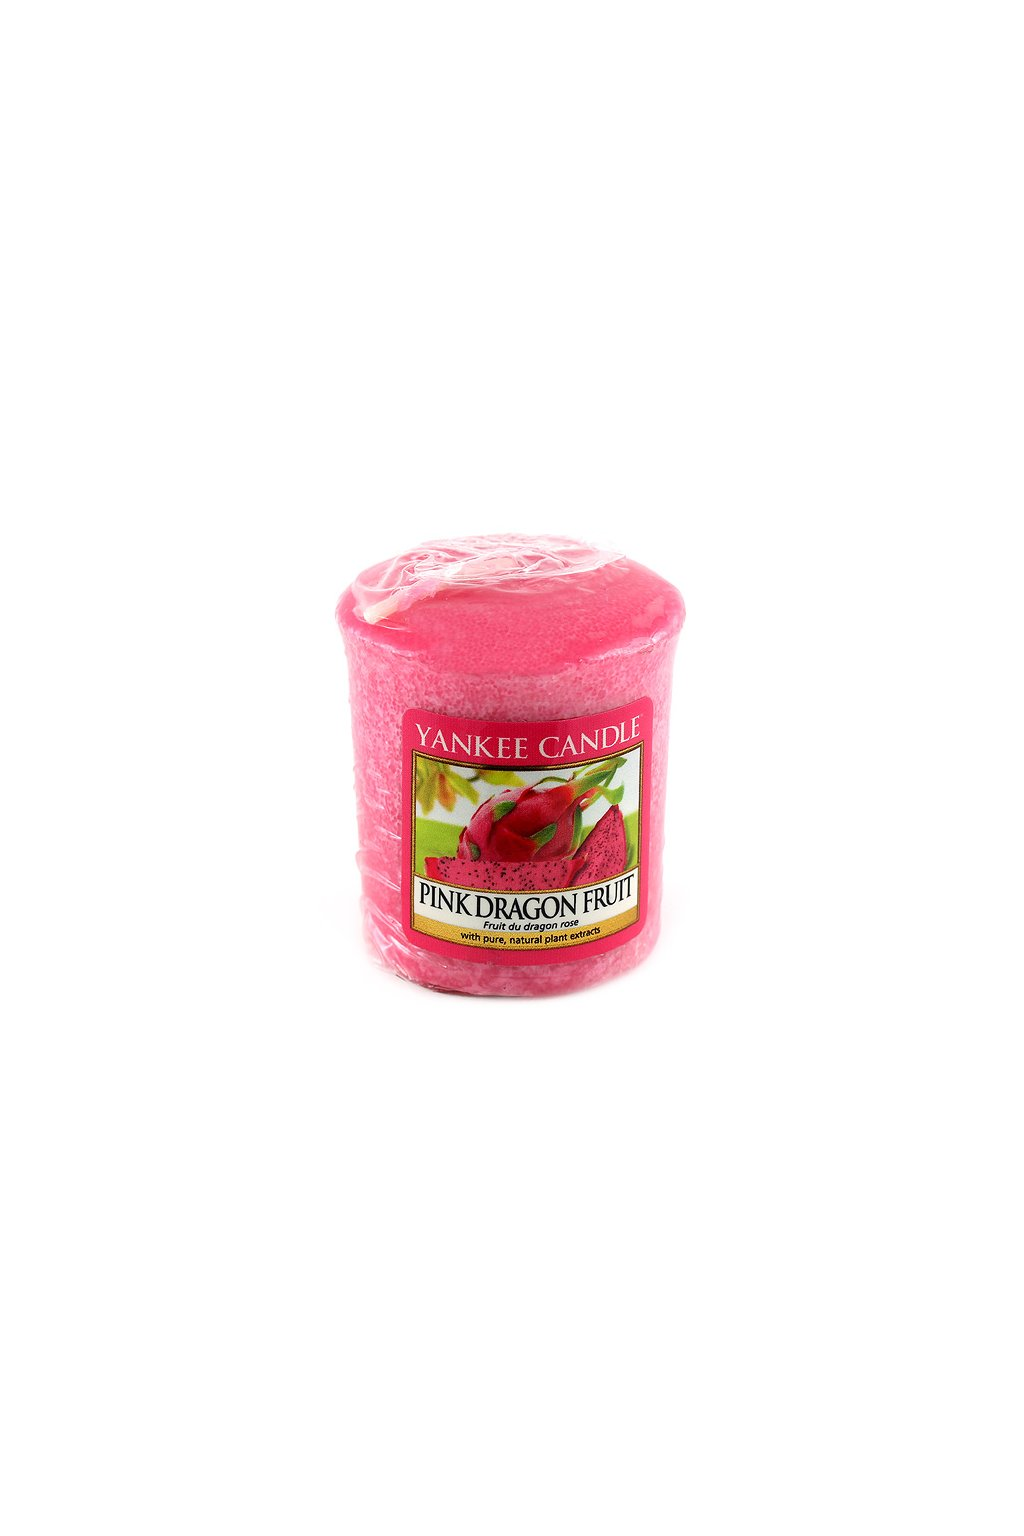 Yankee Candle Pink Dragon Fruit 49g